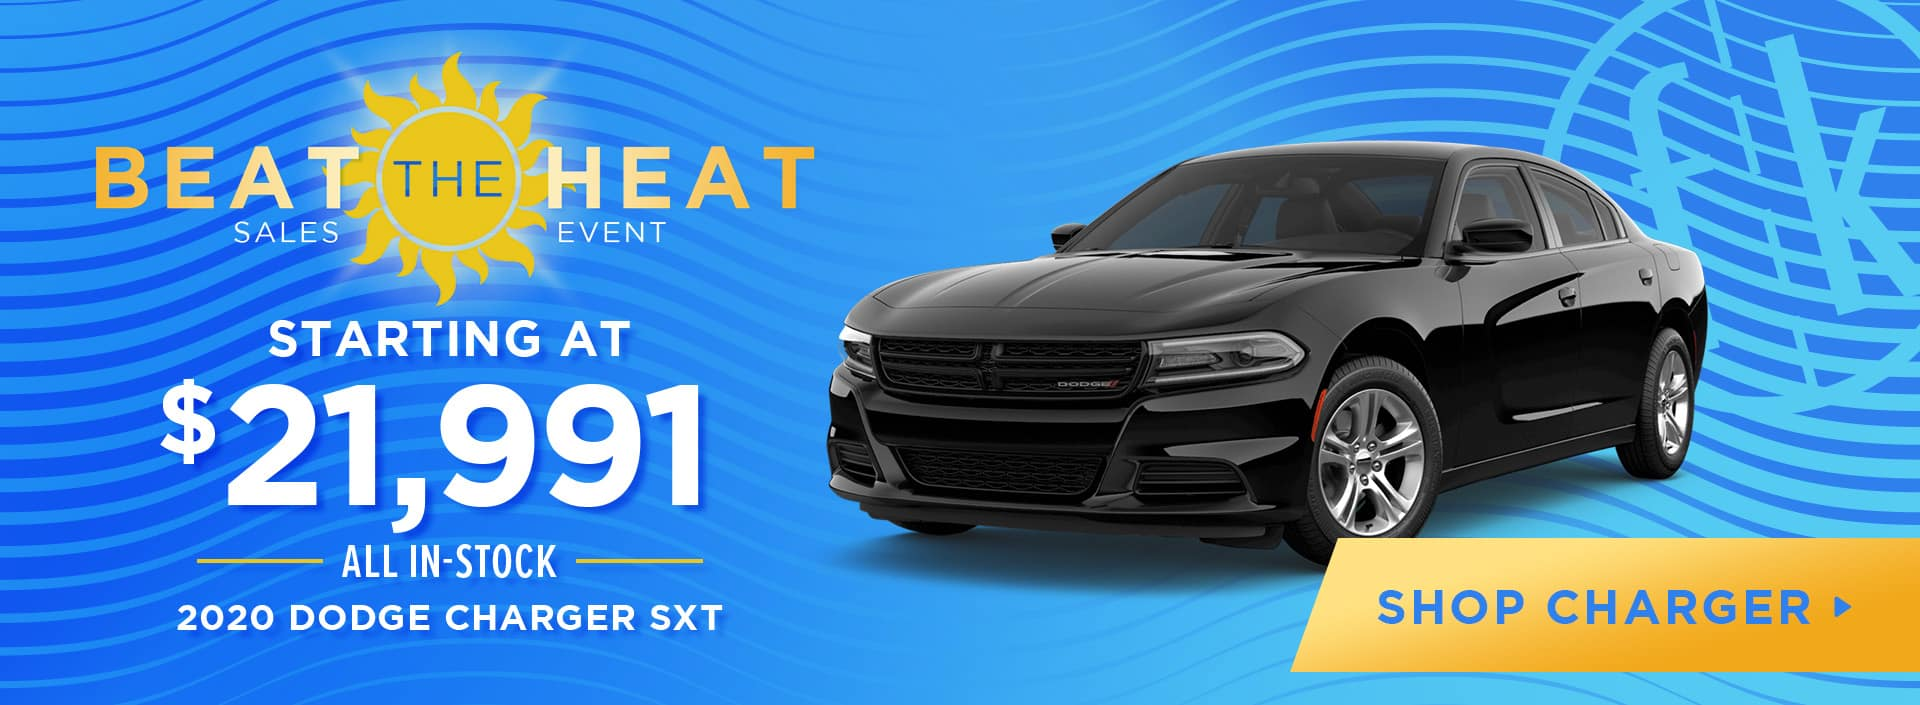 Starting at $21,991 All In-Stock 2020 Dodge Charger SXT